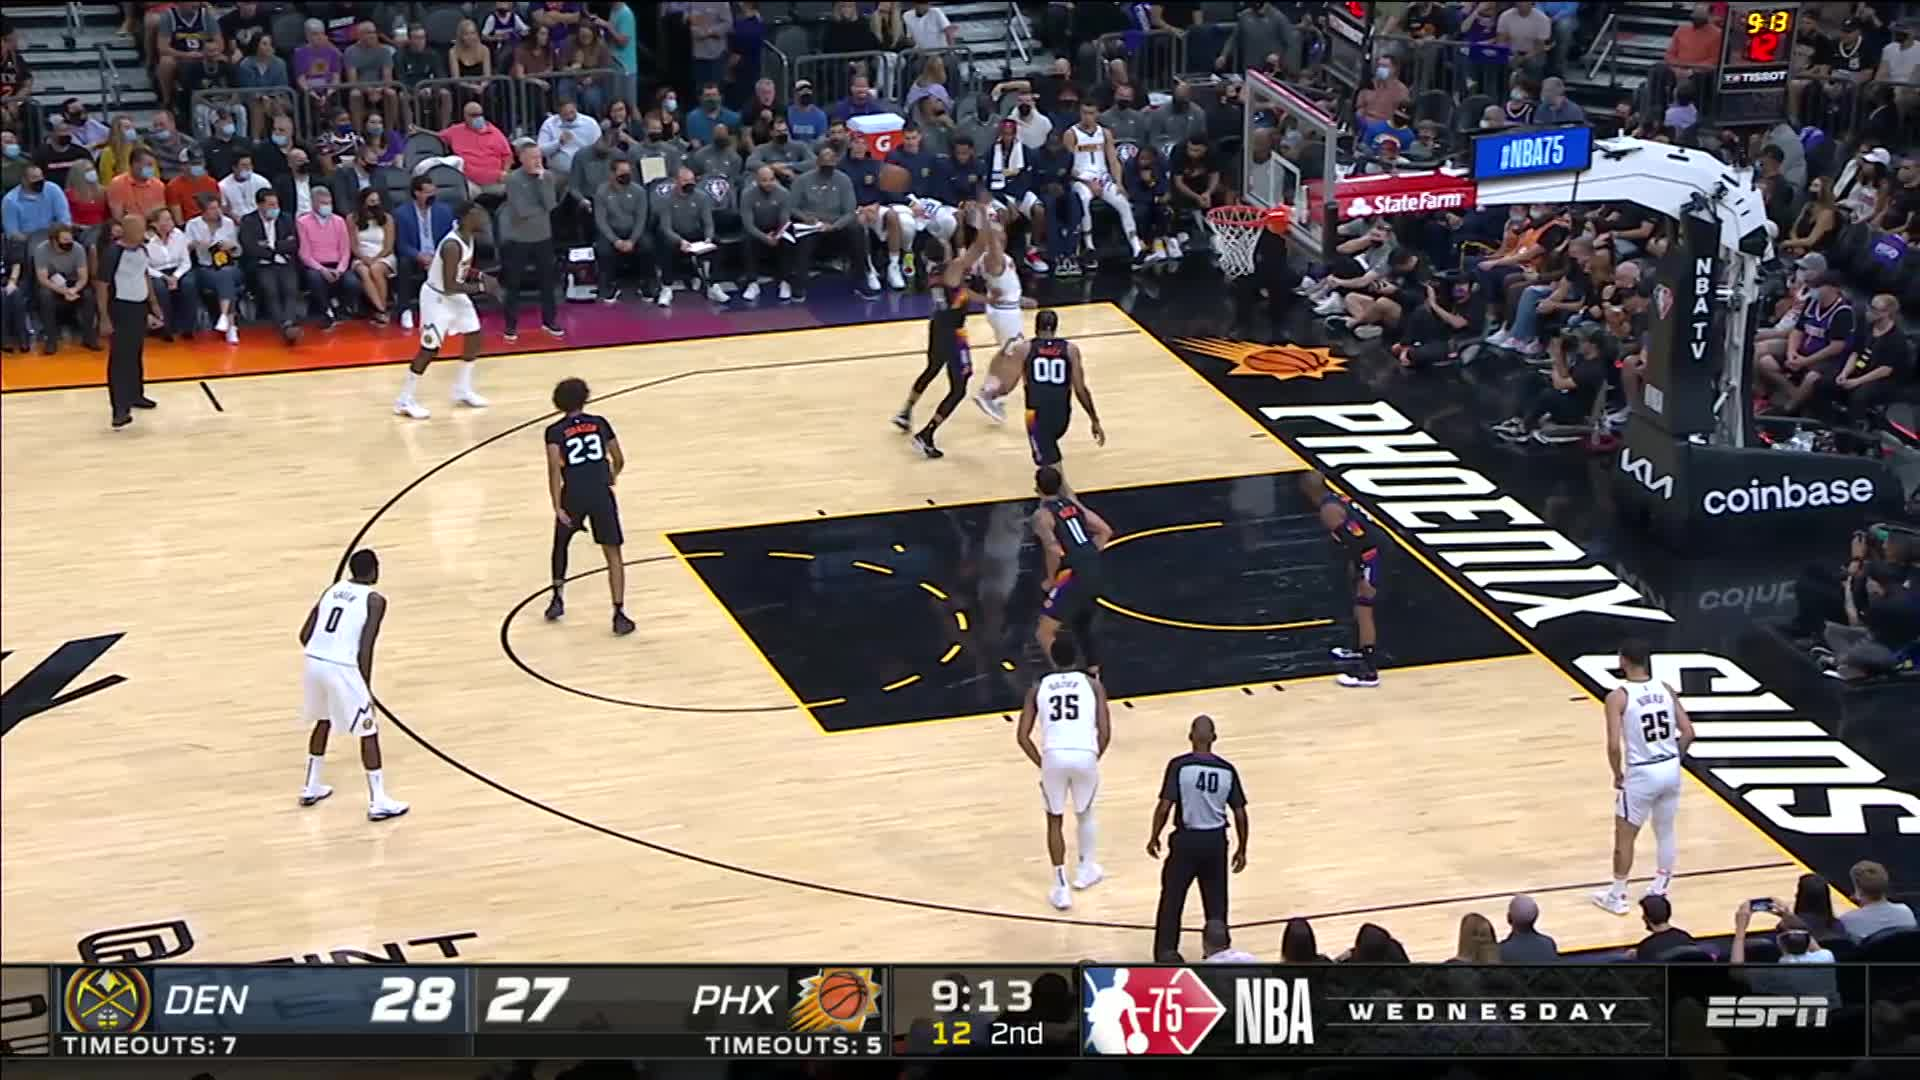 Chris Paul with the dribble pullup 3-pointer